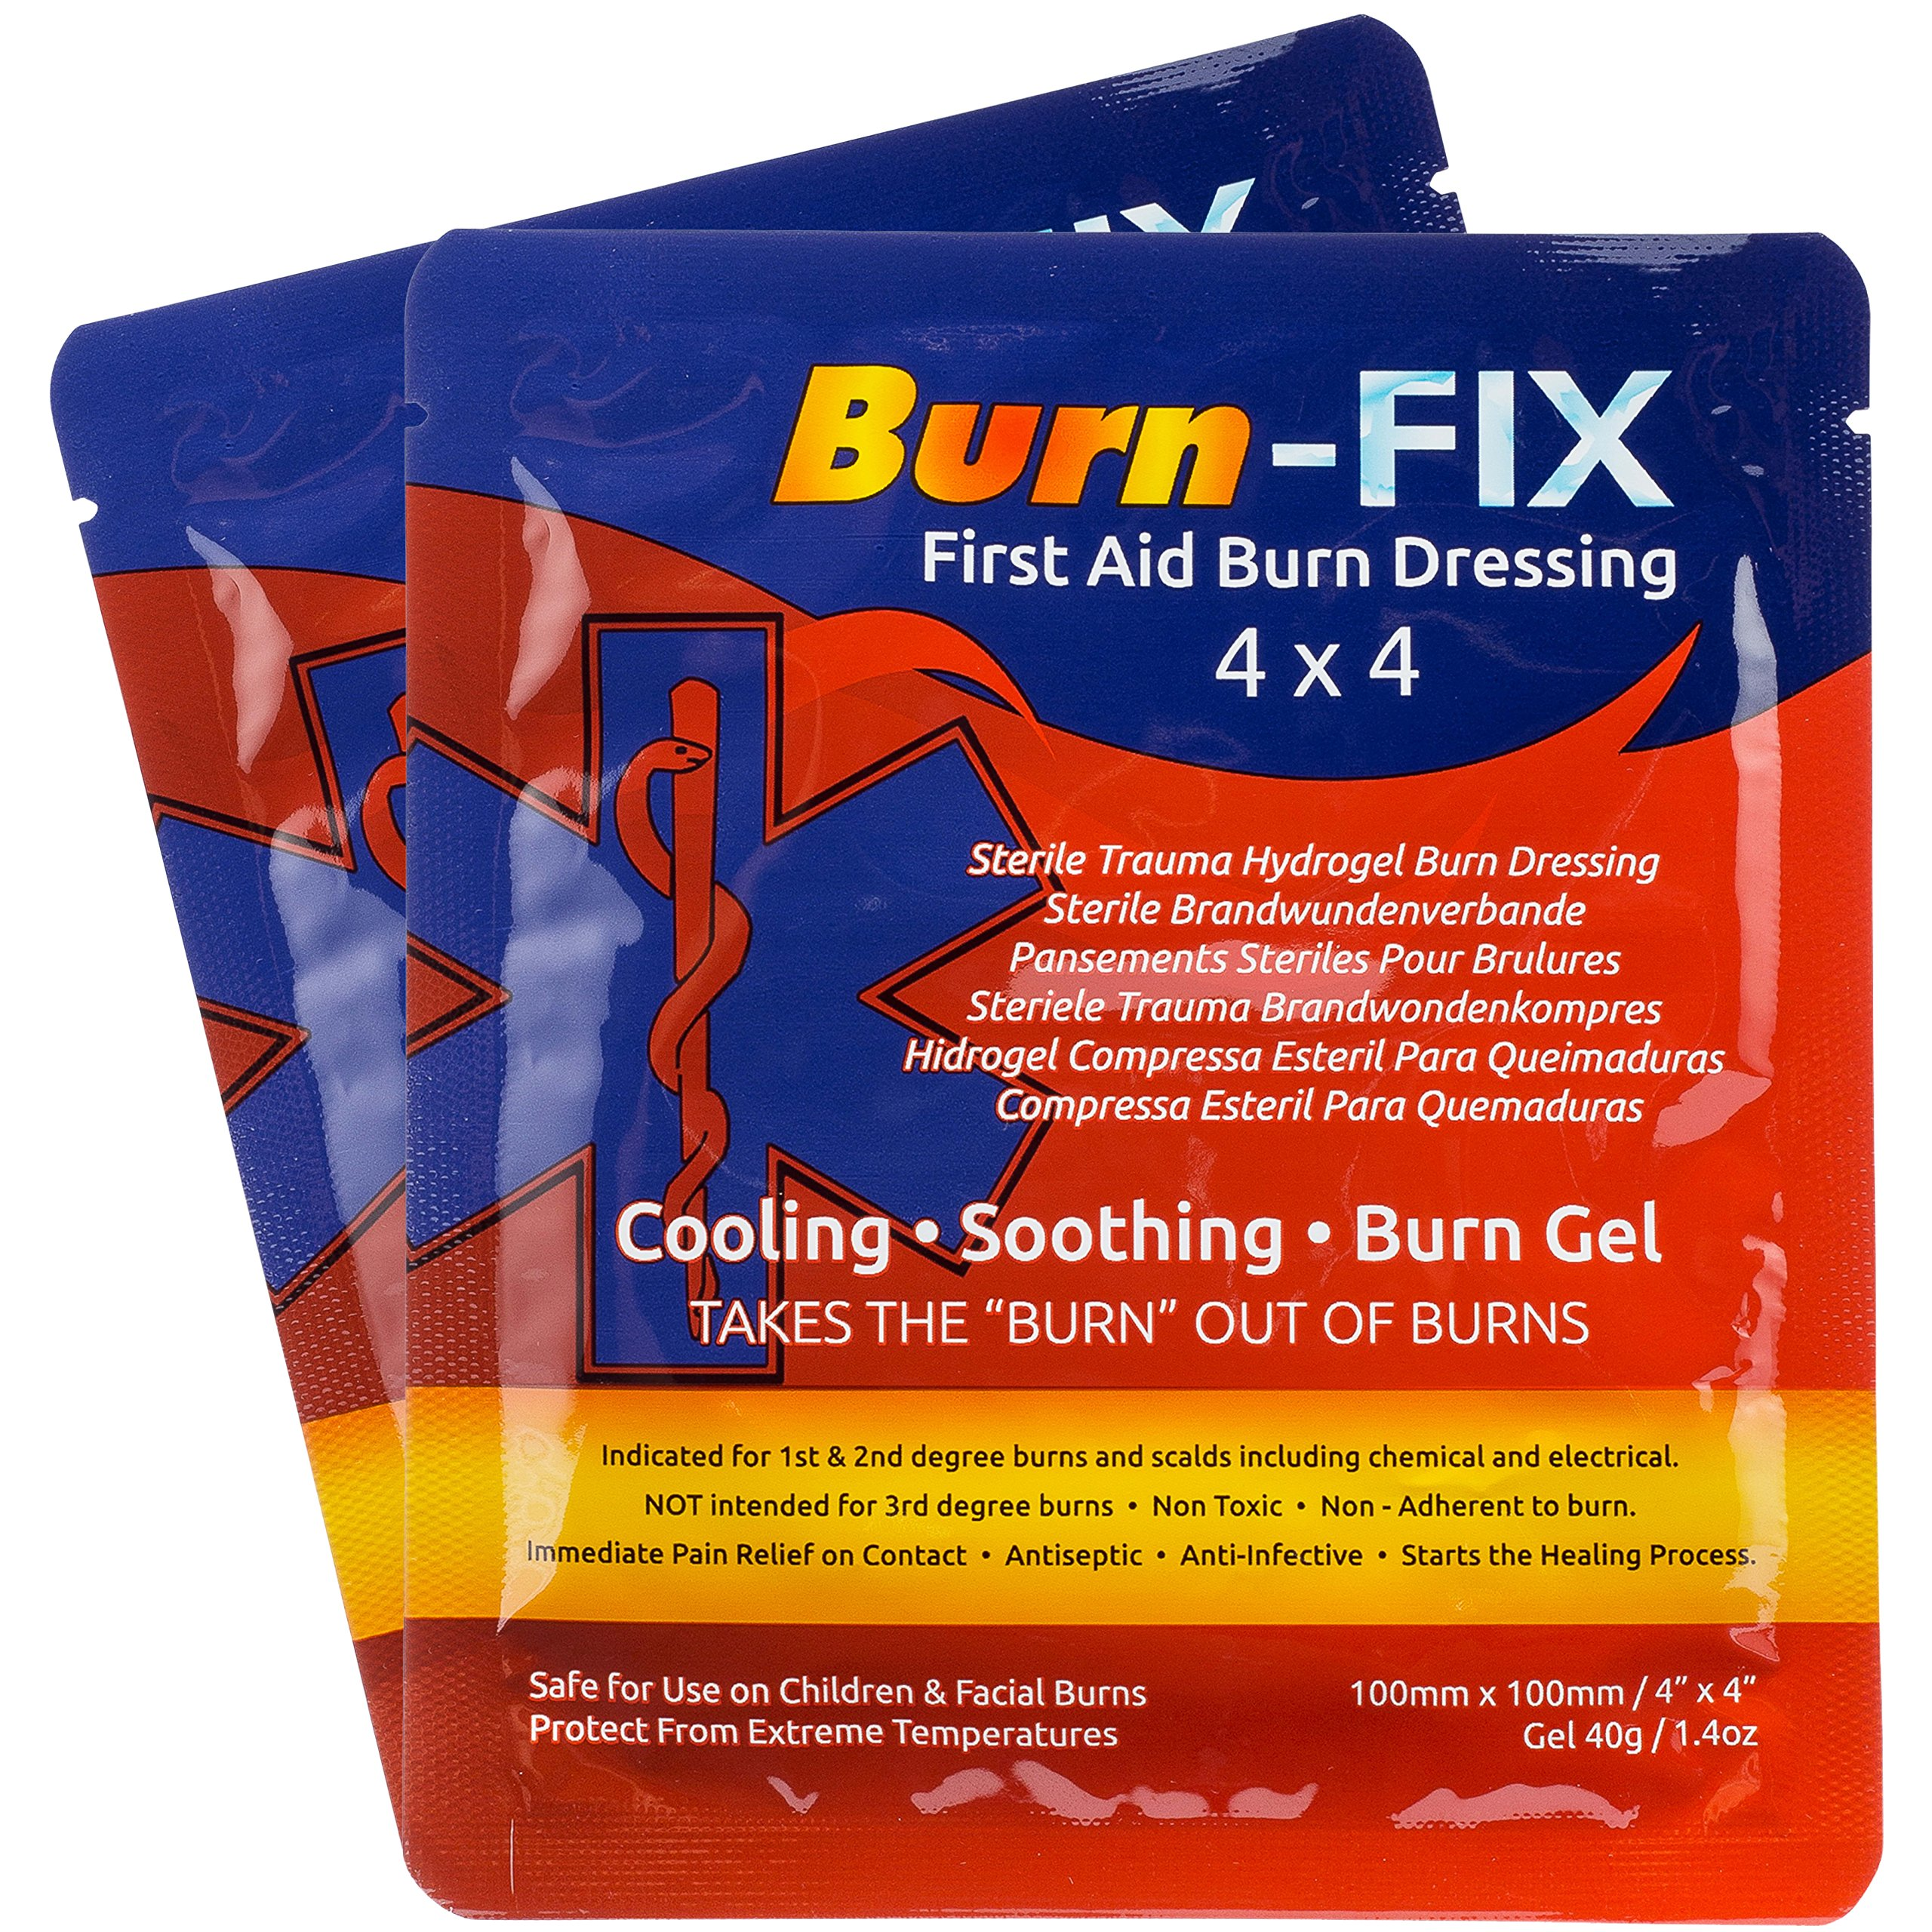 Burn-FIX- 8 Pack-Burn Care Treatment & First Aid Hydrogel Dressing. Immediate Pain Relief Gel/Cream For First & Second Degree Burns, Chemical, Electrical, Grease, Razor and Sunburns. 4 X 4 in.